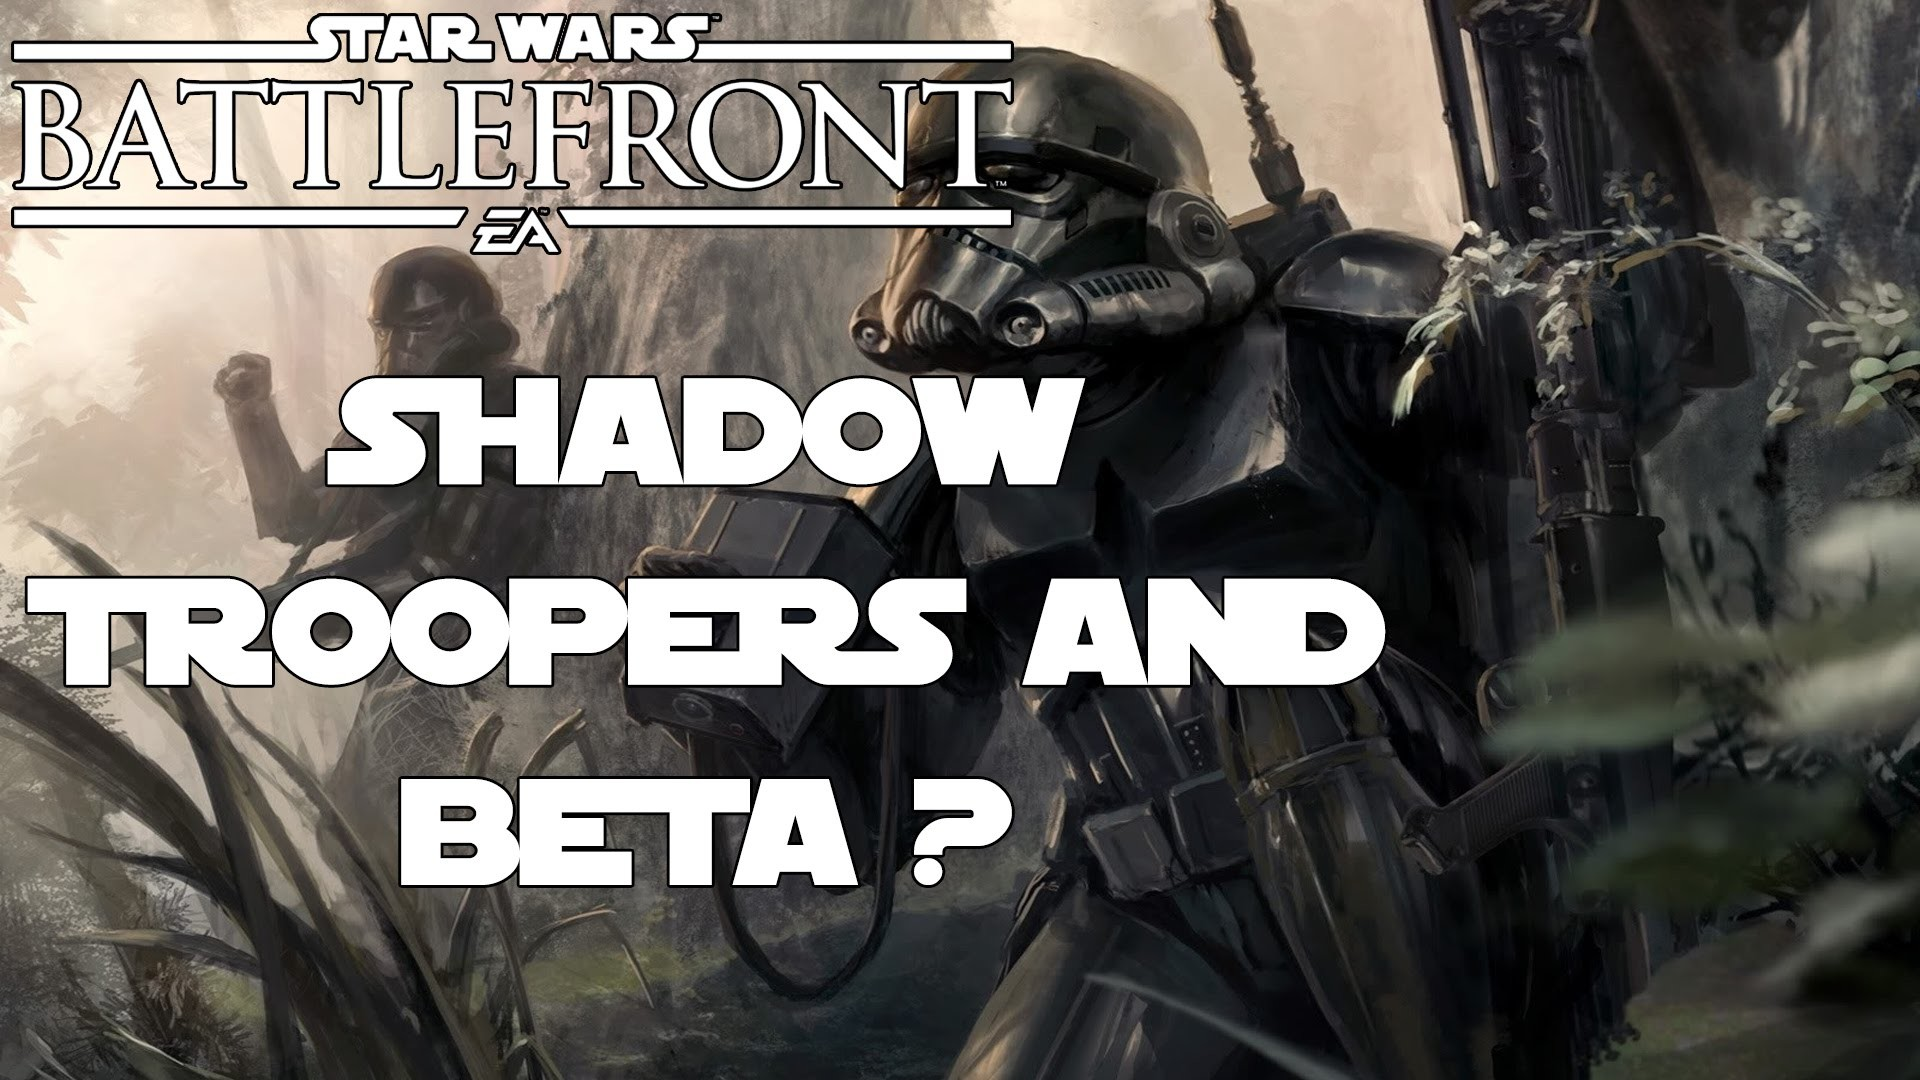 Star Wars Battlefront – Shadow Troopers and a Beta ??